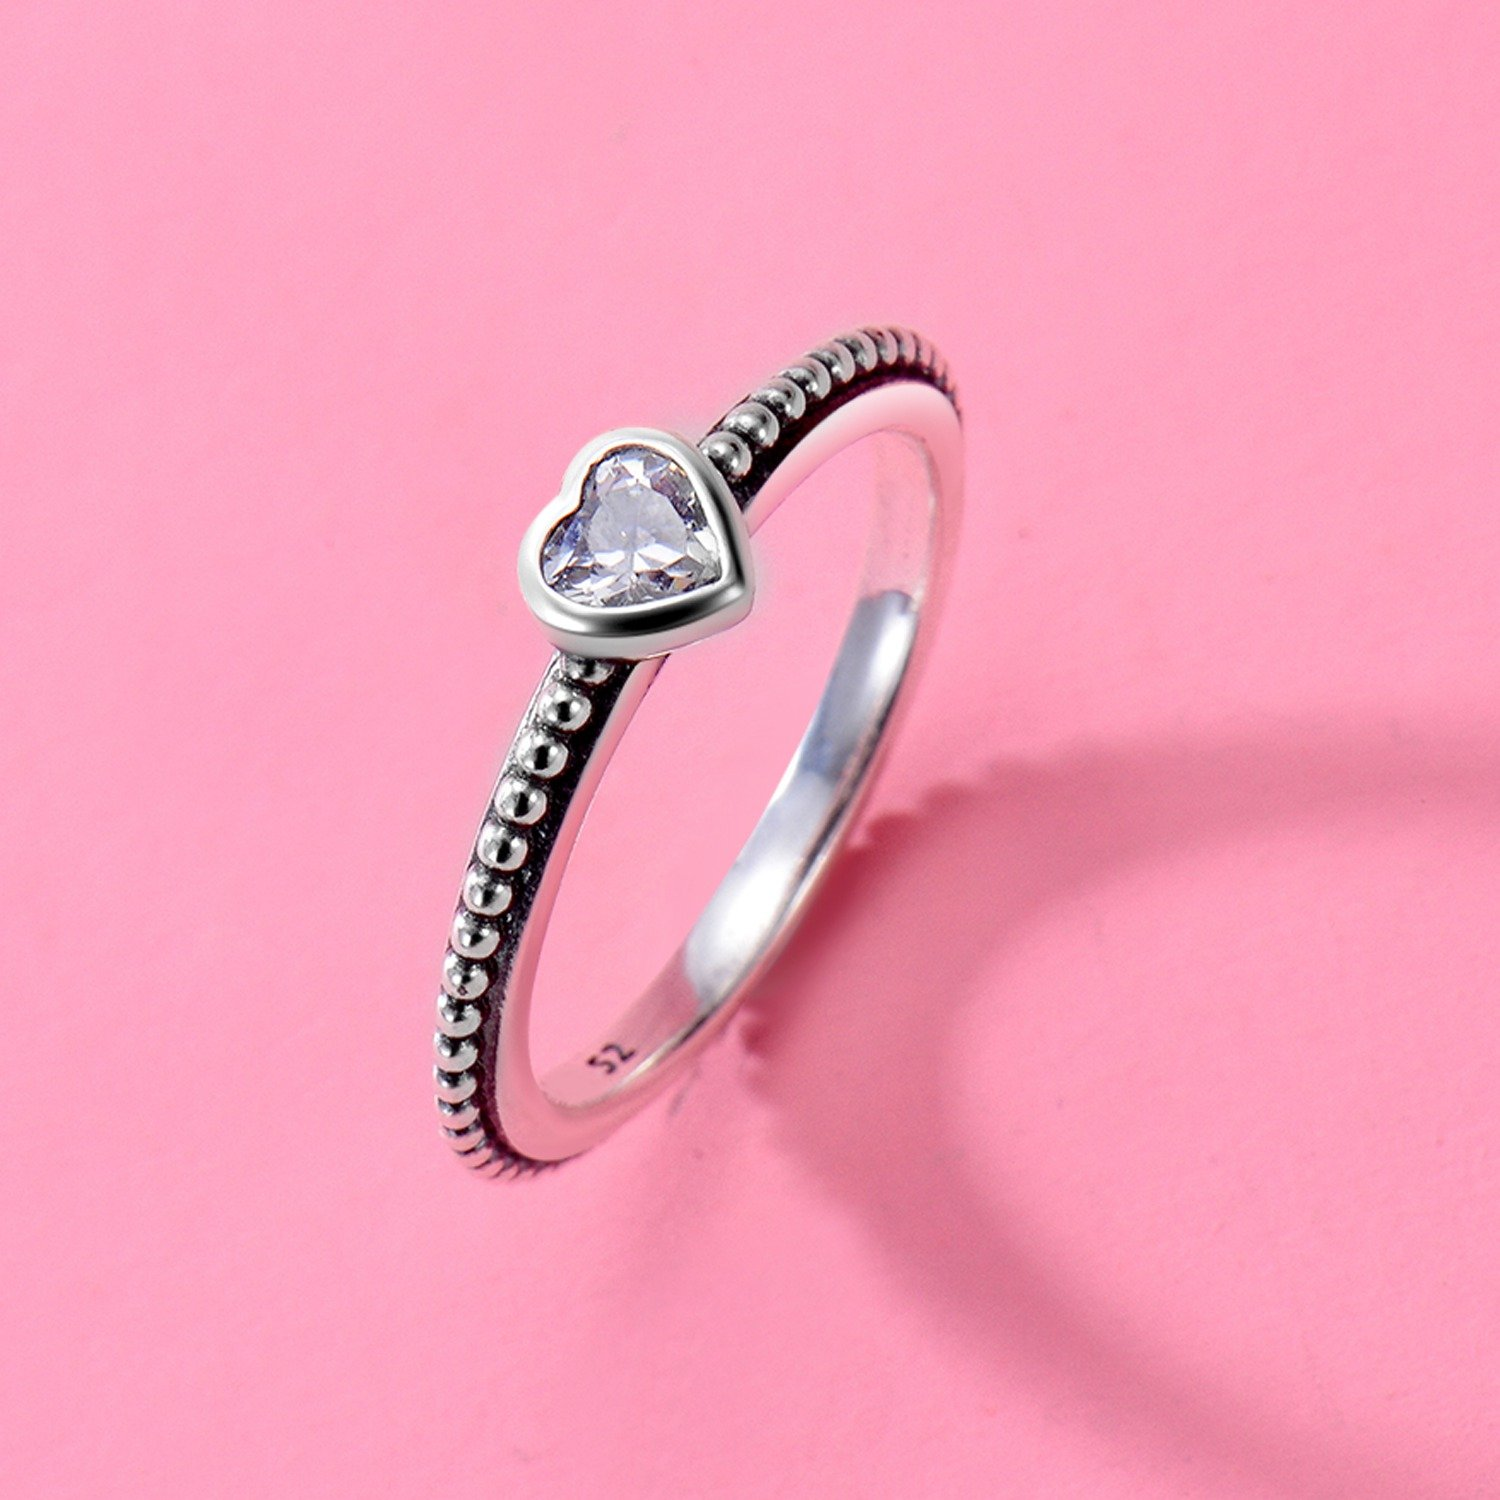 Changeable Solitaire Promise Rings - White Crystals, Solid 925 Sterling Silver # Size 6 (Soul Heart) by Changeable (Image #4)